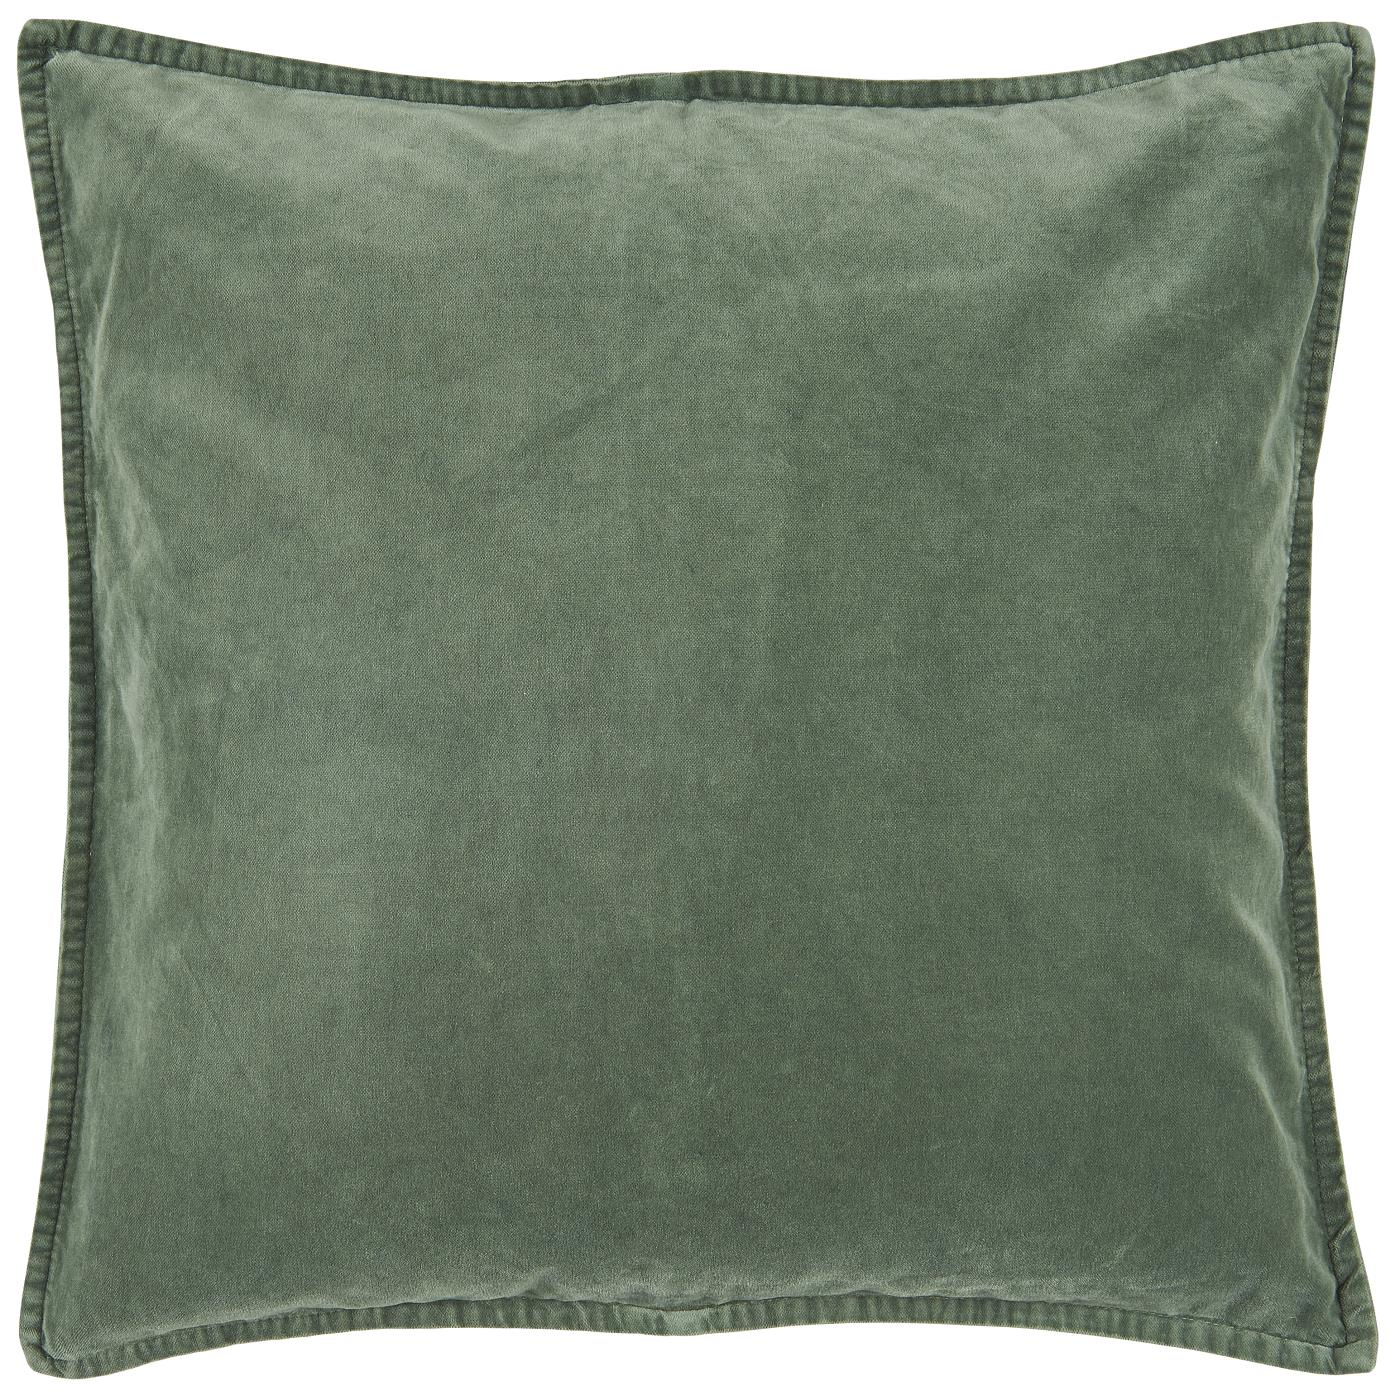 Dusty Chalk Green Velvet Cushion Including Feather Pad